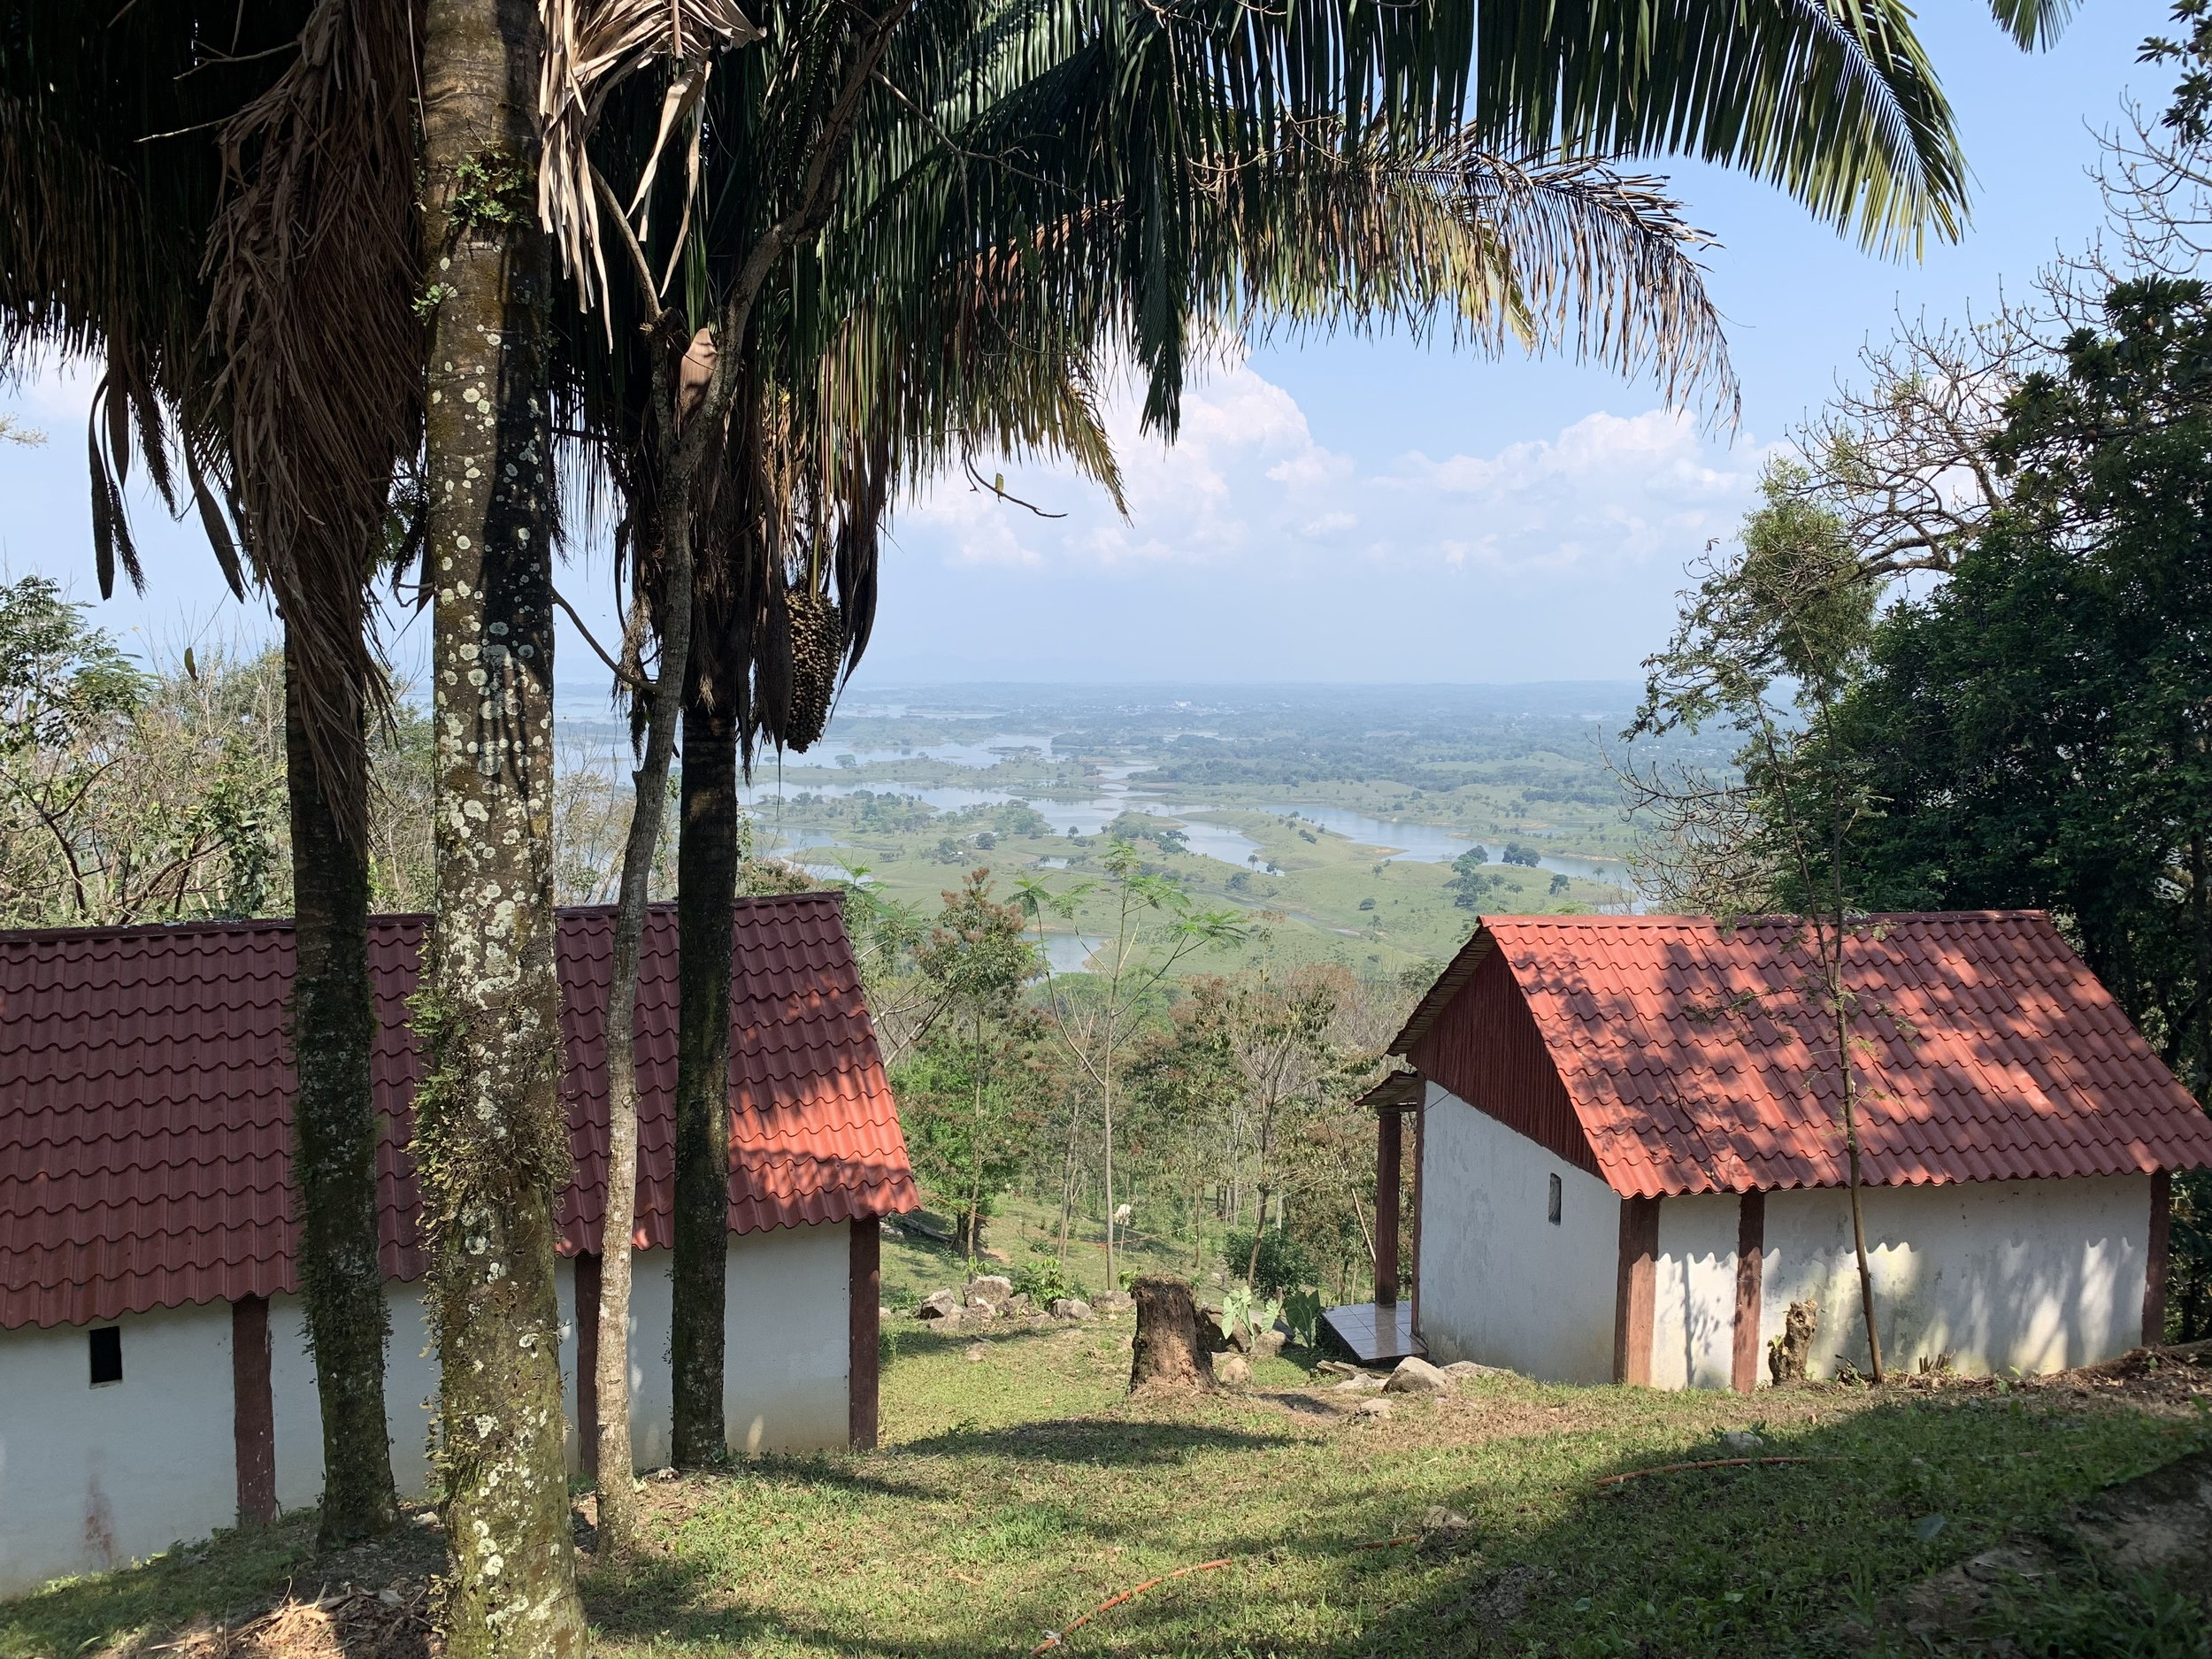 A view from the tourist accommodation over lake Miguel Alemán. Photo by Teddy Garlock.